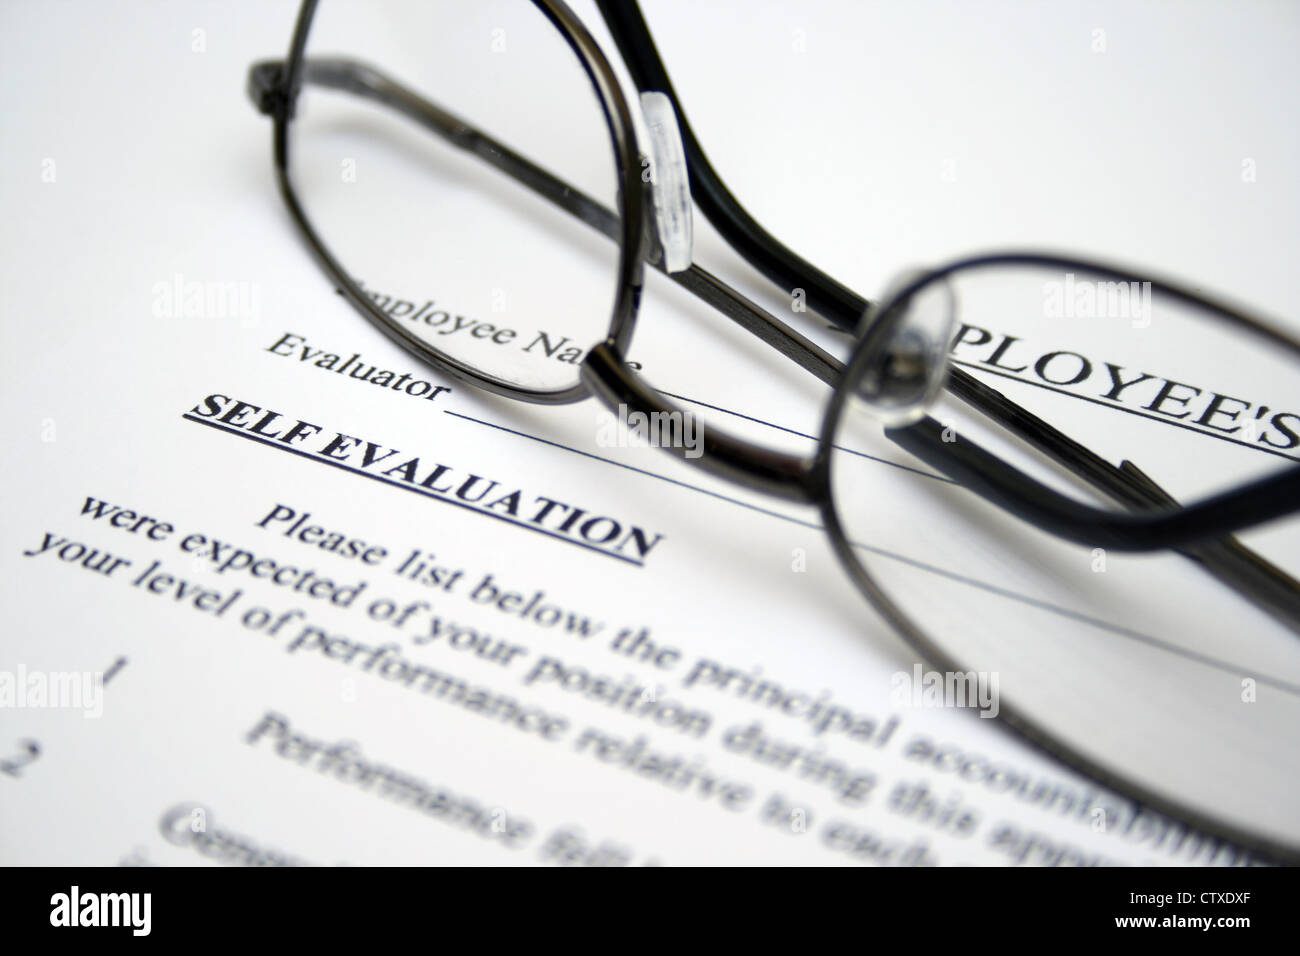 Employee Performance Evaluation Form Stock Photos & Employee ...